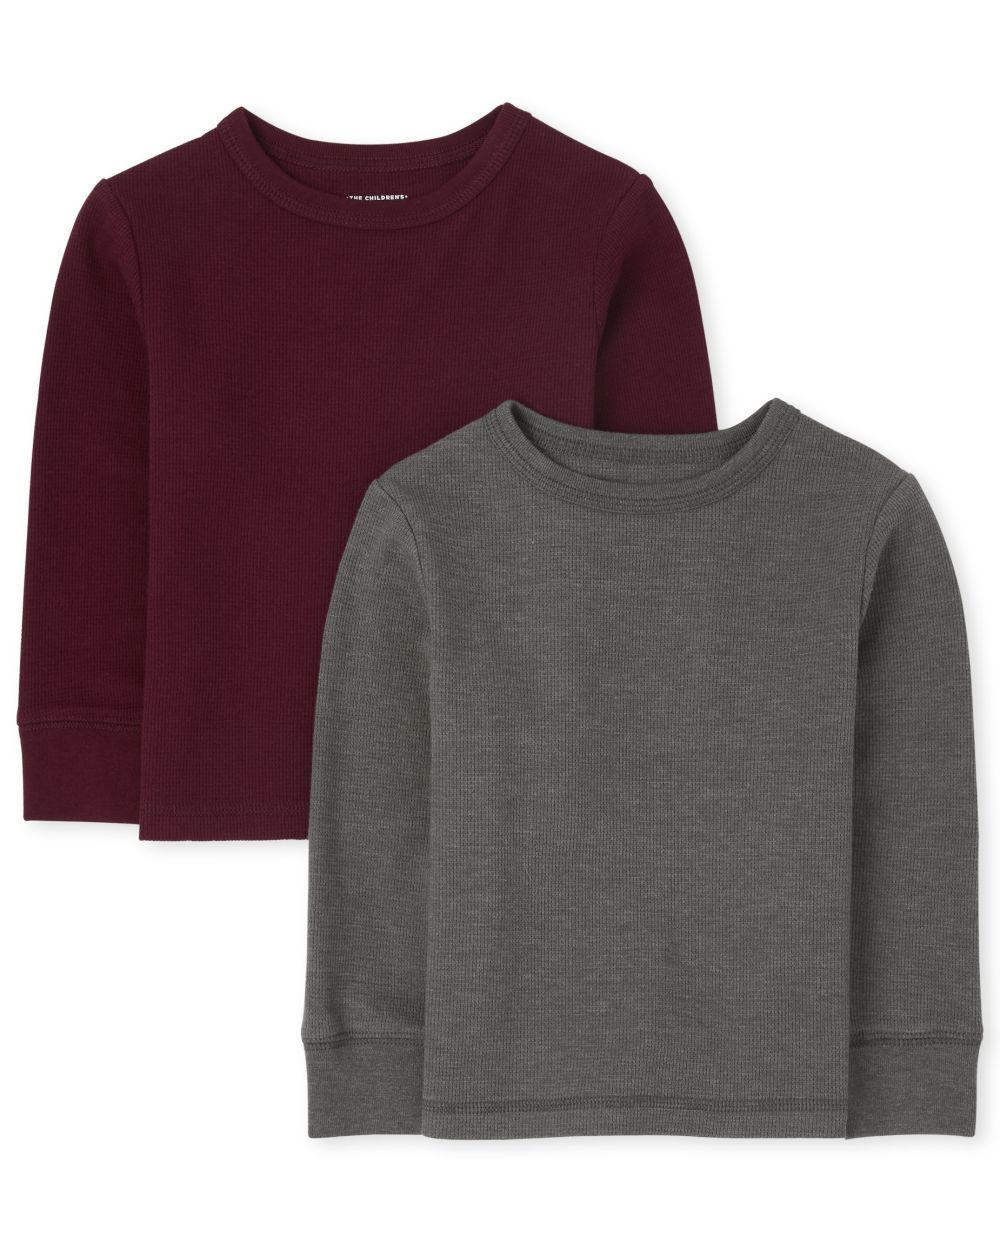 Baby And Toddler Boys Thermal Top 2-Pack